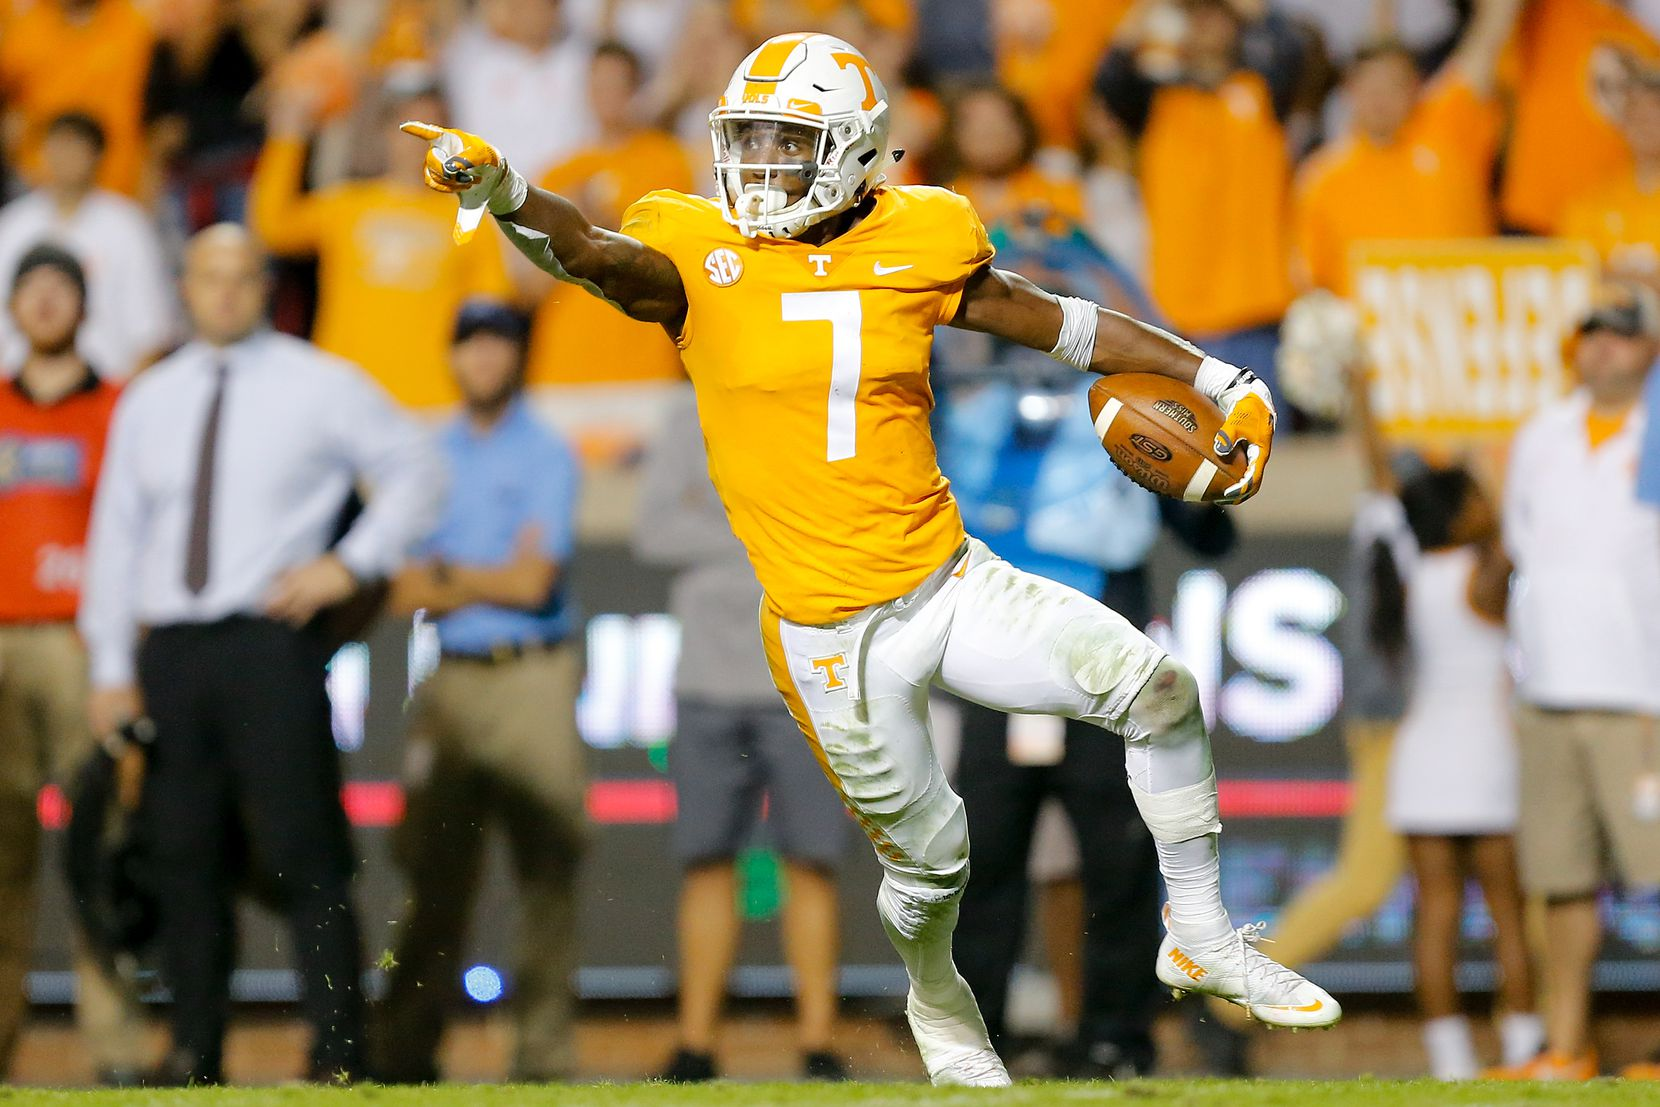 KNOXVILLE, TN - NOVEMBER 04:  Rashaan Gaulden #7 of the Tennessee Volunteers reacts after a fumble recovery against the Southern Miss Golden Eagles during the second half at Neyland Stadium on November 4, 2017 in Knoxville, Tennessee.  (Photo by Michael Reaves/Getty Images)